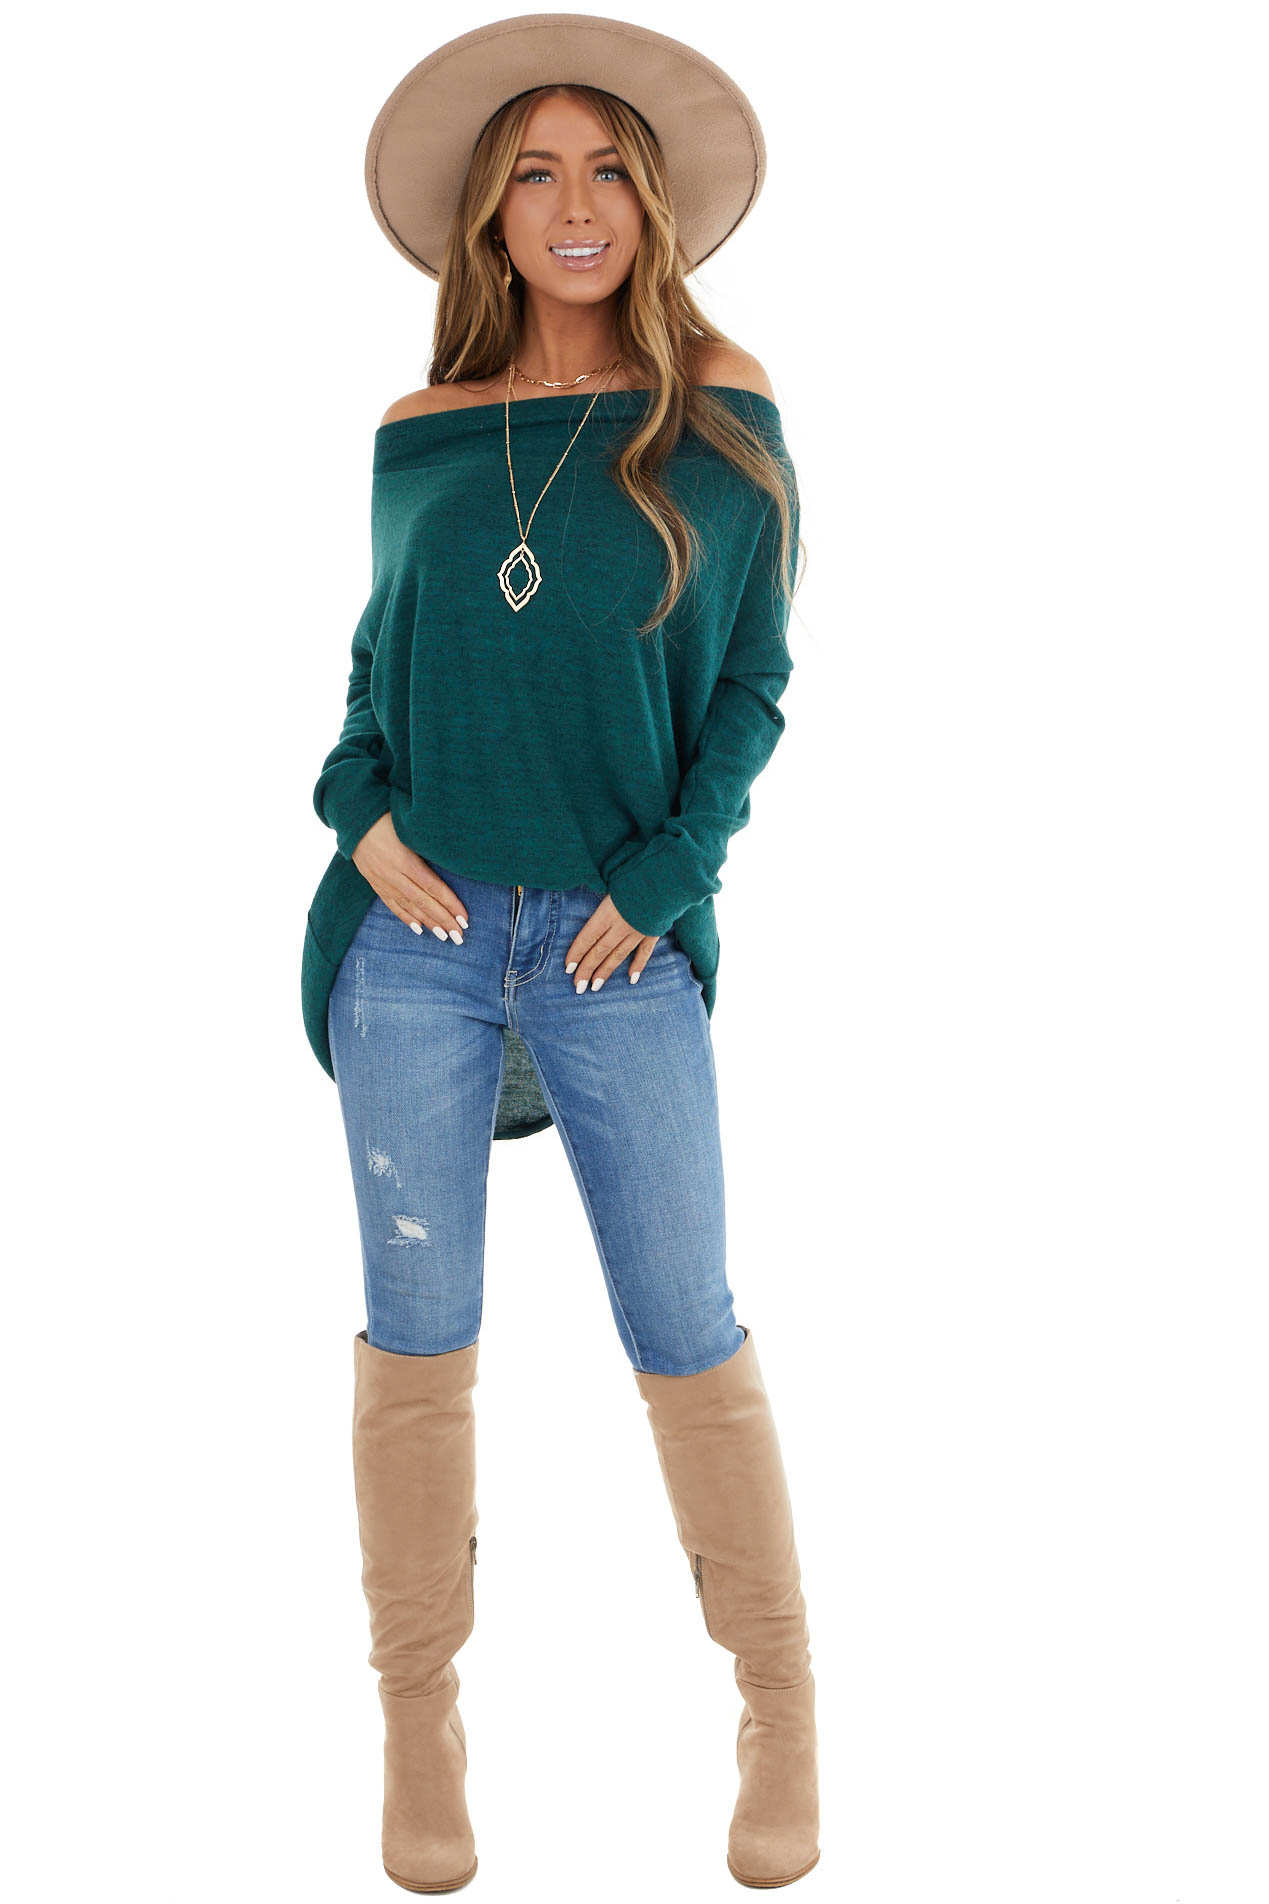 Pine Green Two Tone Off the Shoulder Long Sleeve Knit Top